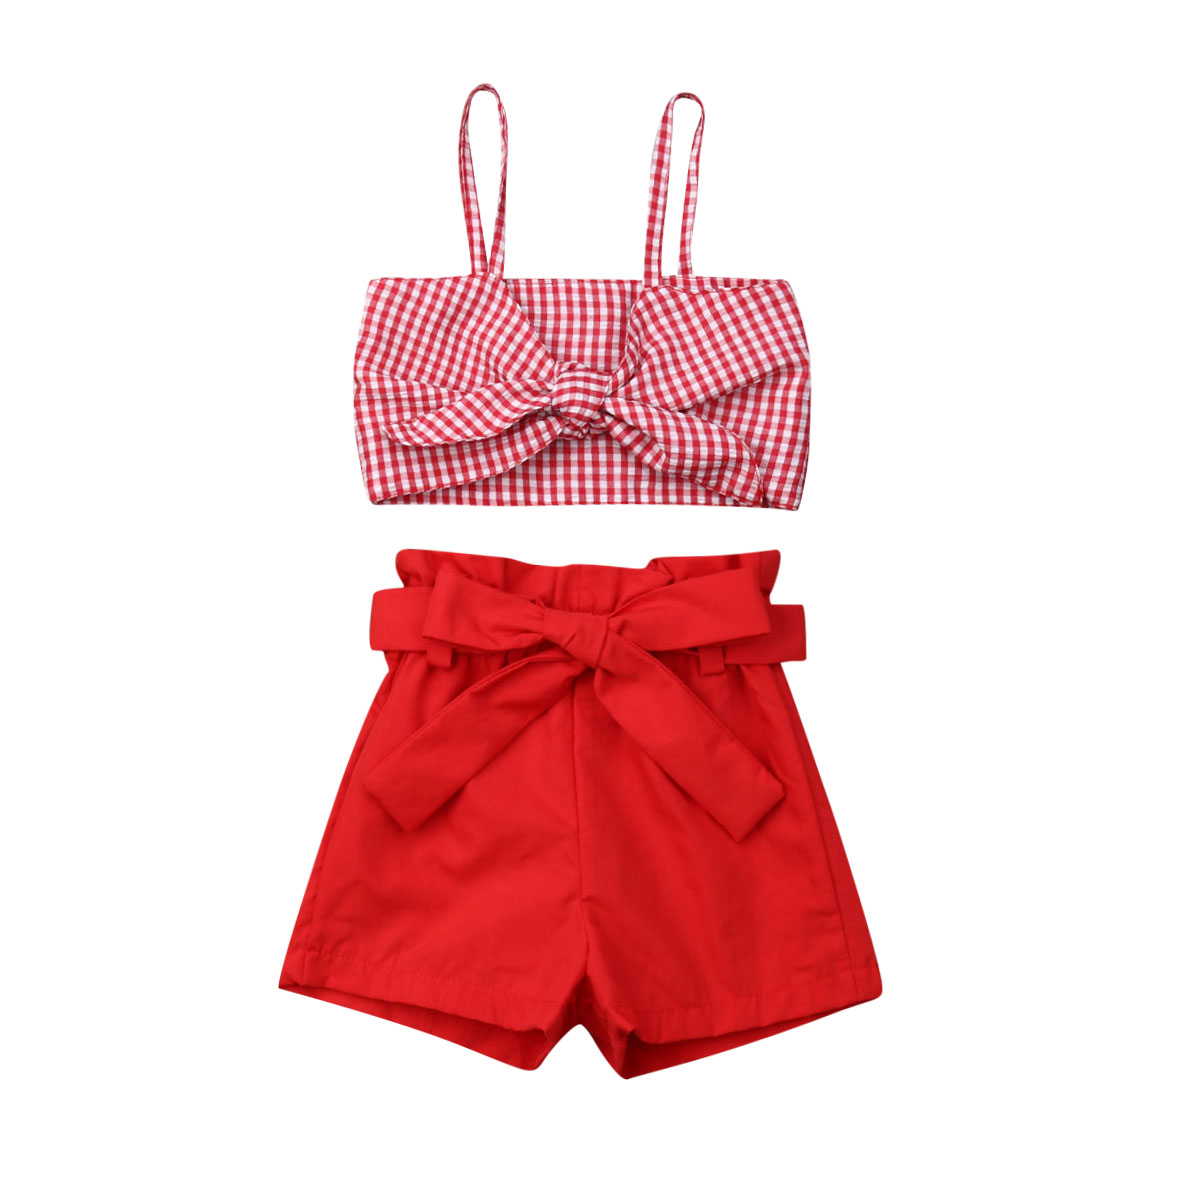 f1c6eaca336b 1-6Y Infant Kid Baby Girls Clothes Sets Sleeveless Bowknot Plaid Crop Tops  Pants Shorts Outfit